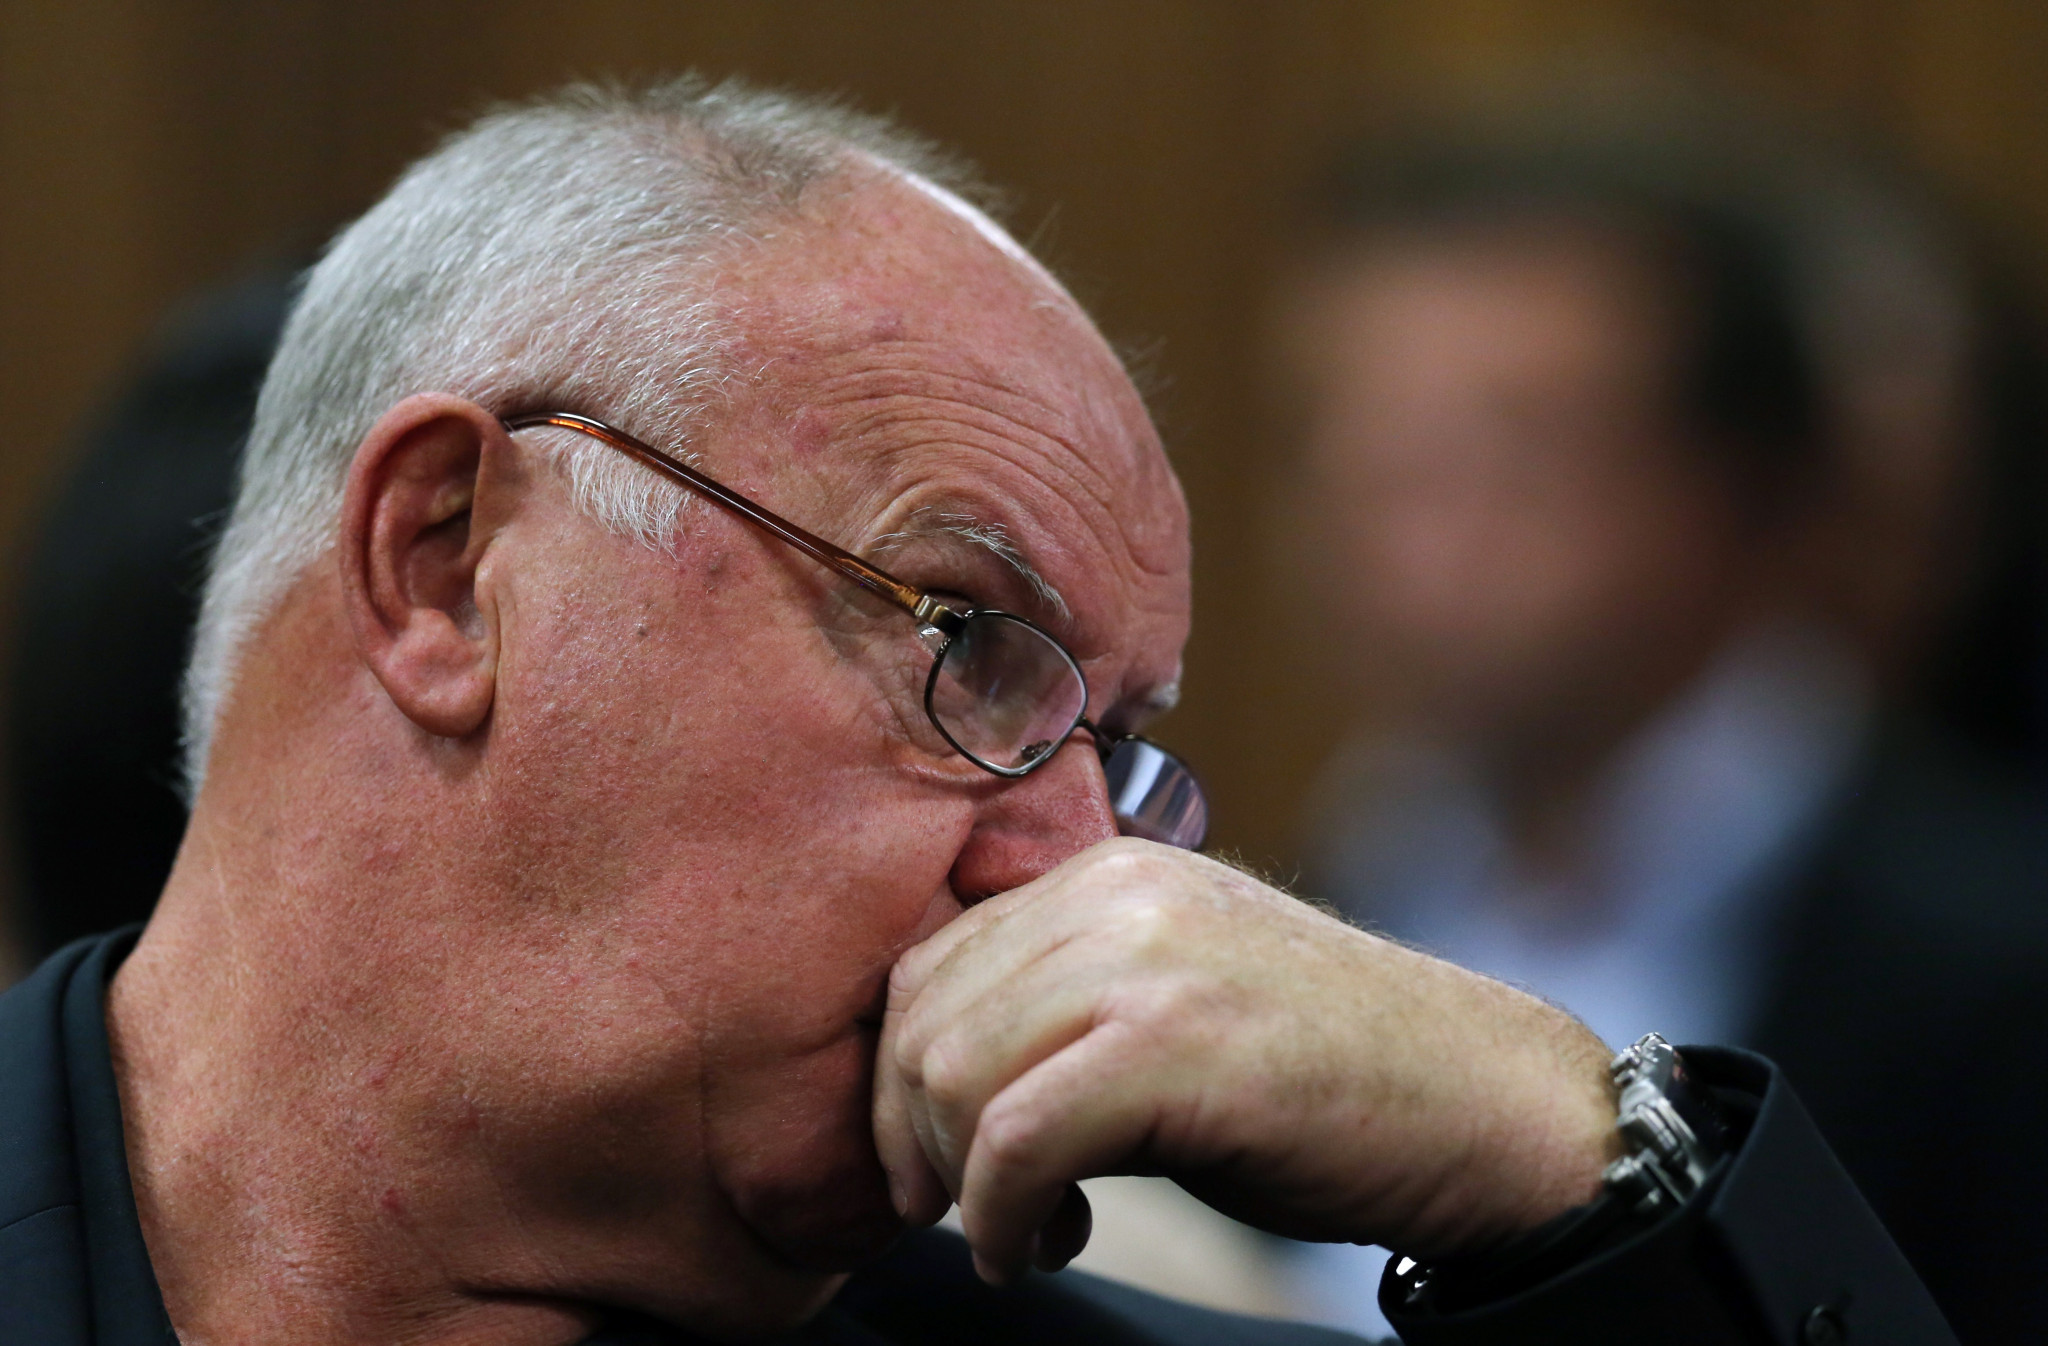 Ampie Louw, former coach of Oscar Pistorius, dies aged 72 of COVID-19